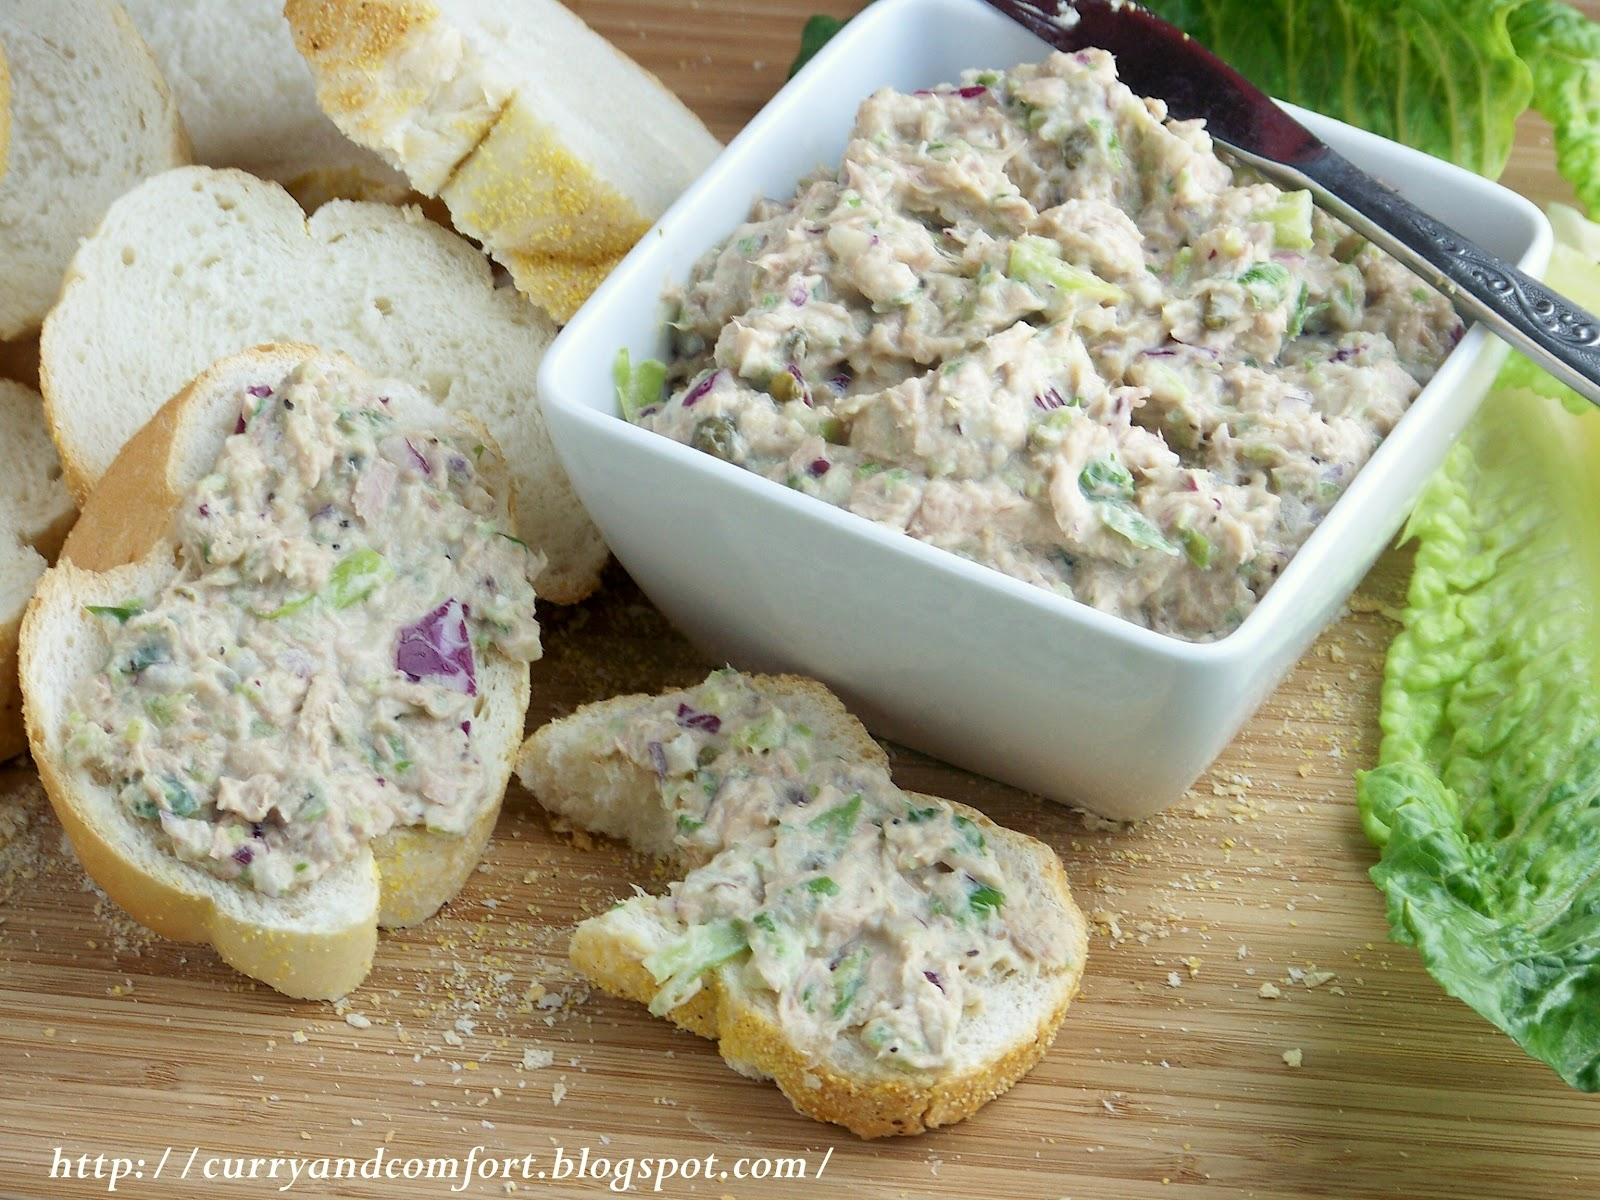 Tuna Salad With Crackers Eat with bread, crackers or in